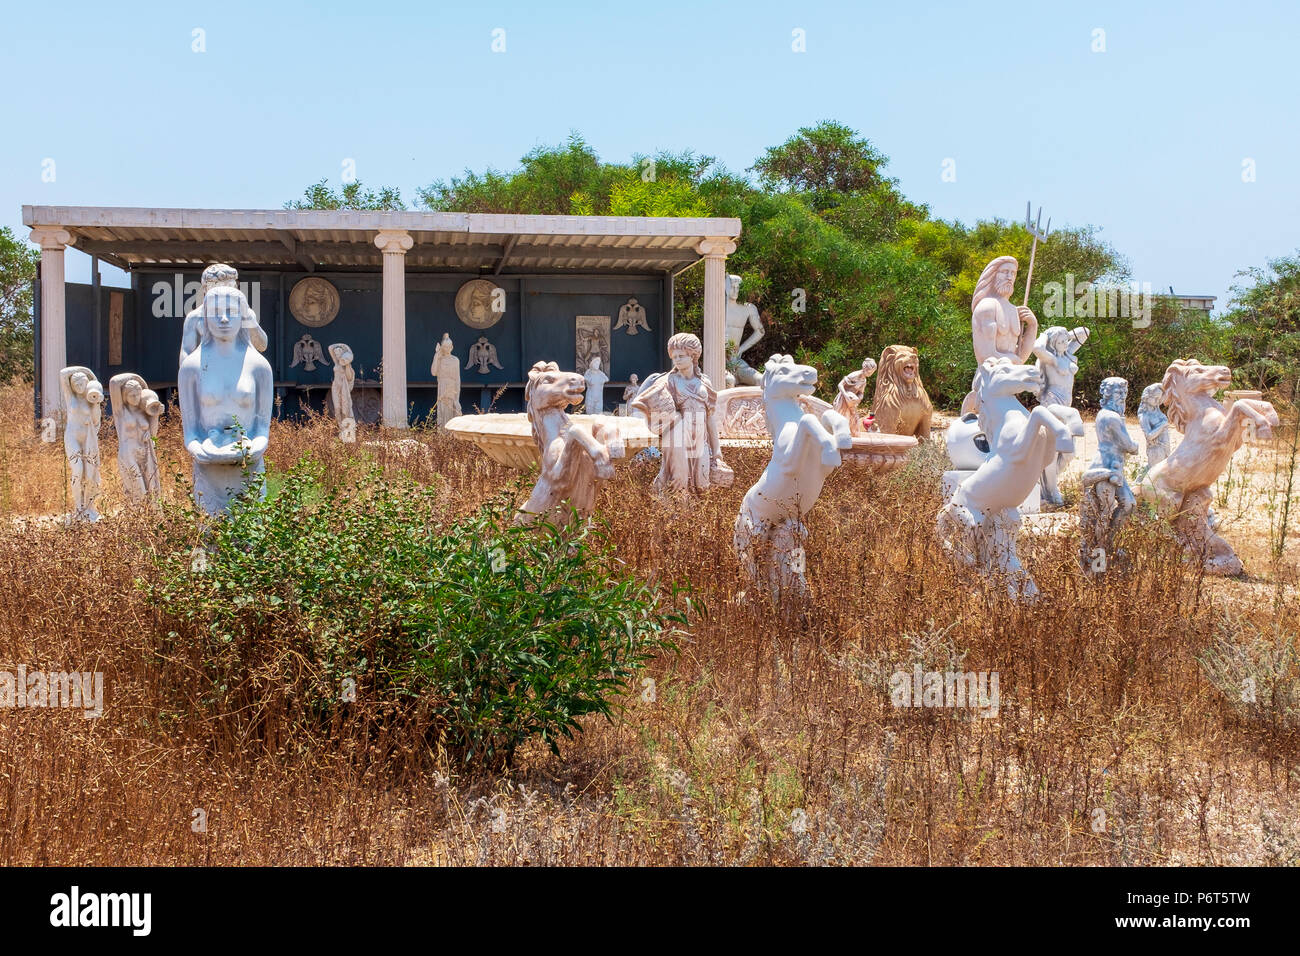 A number of Greek styled garden statues standing in a disused garden ...